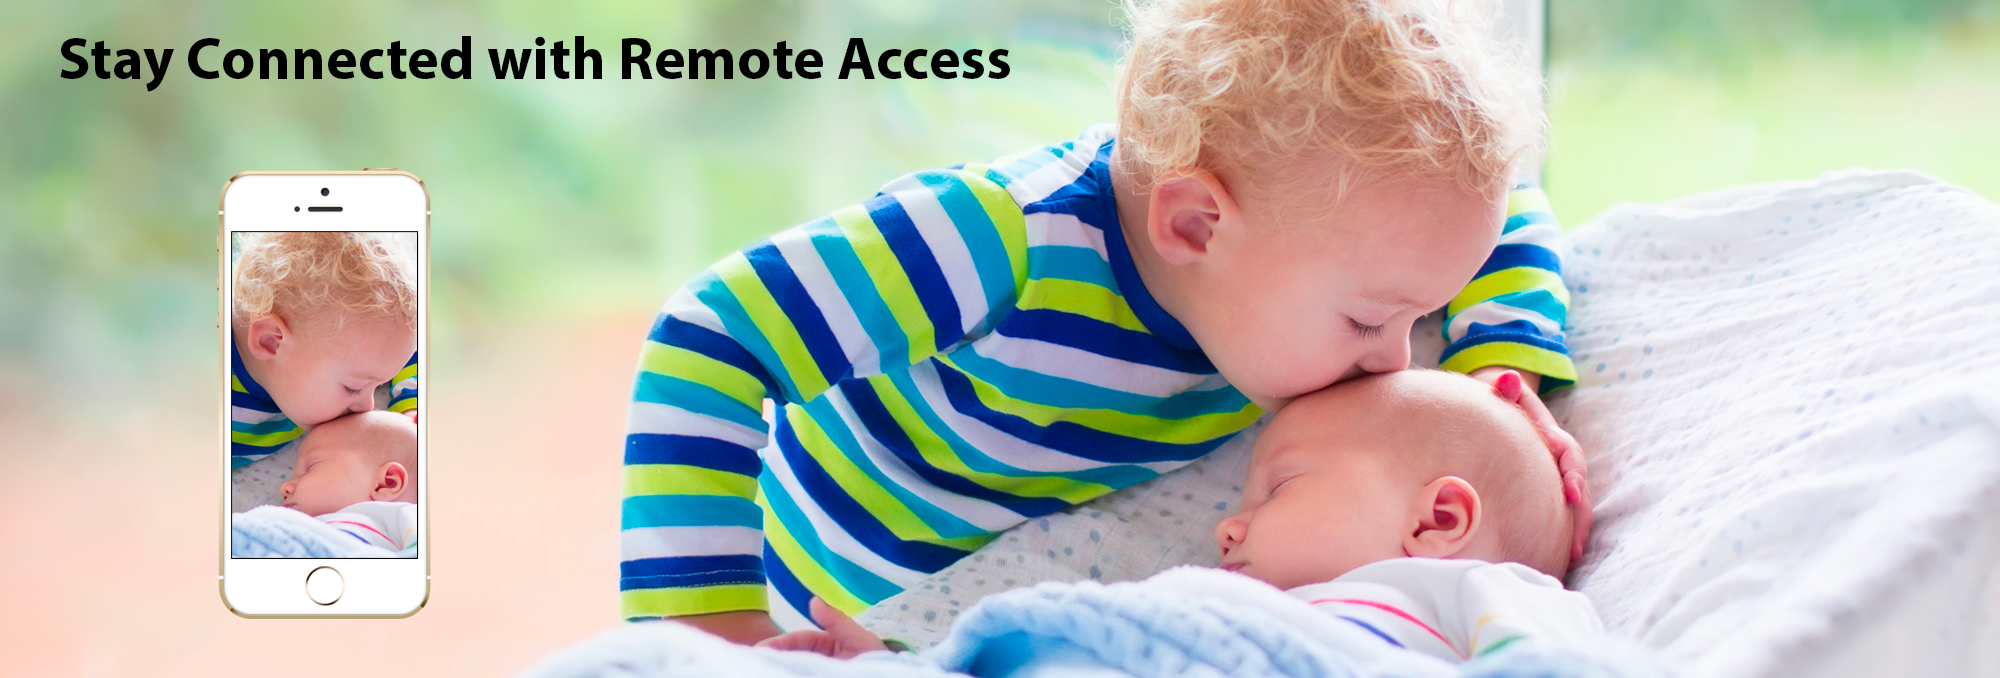 Stay Connected with Remote Access